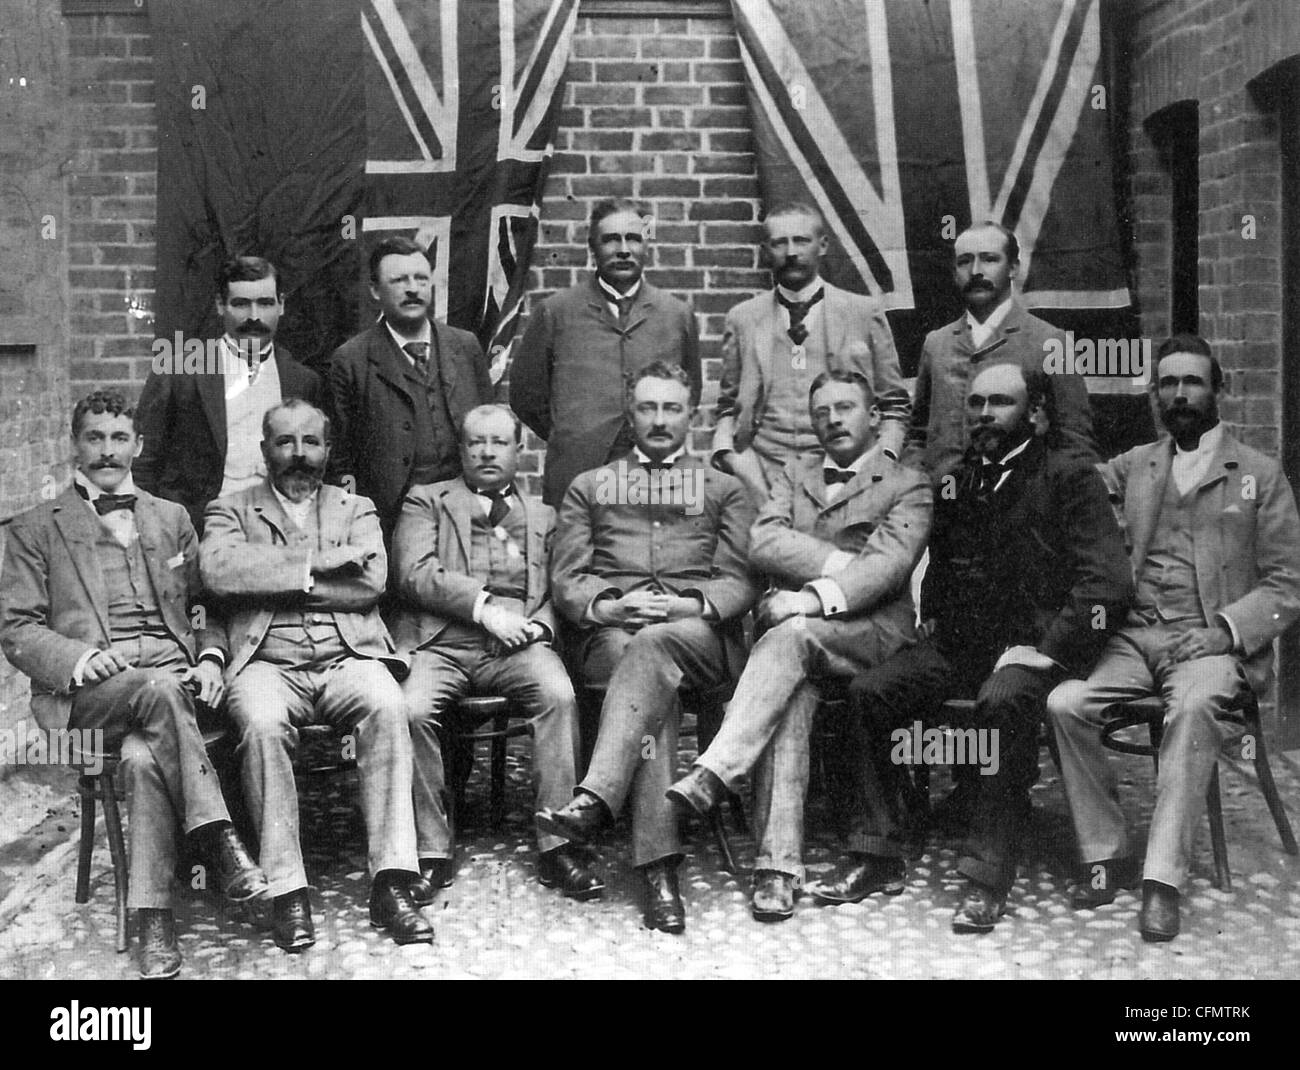 CECIL RHODES (seated centre) and Directors of De Beers in 1895 - Stock Image